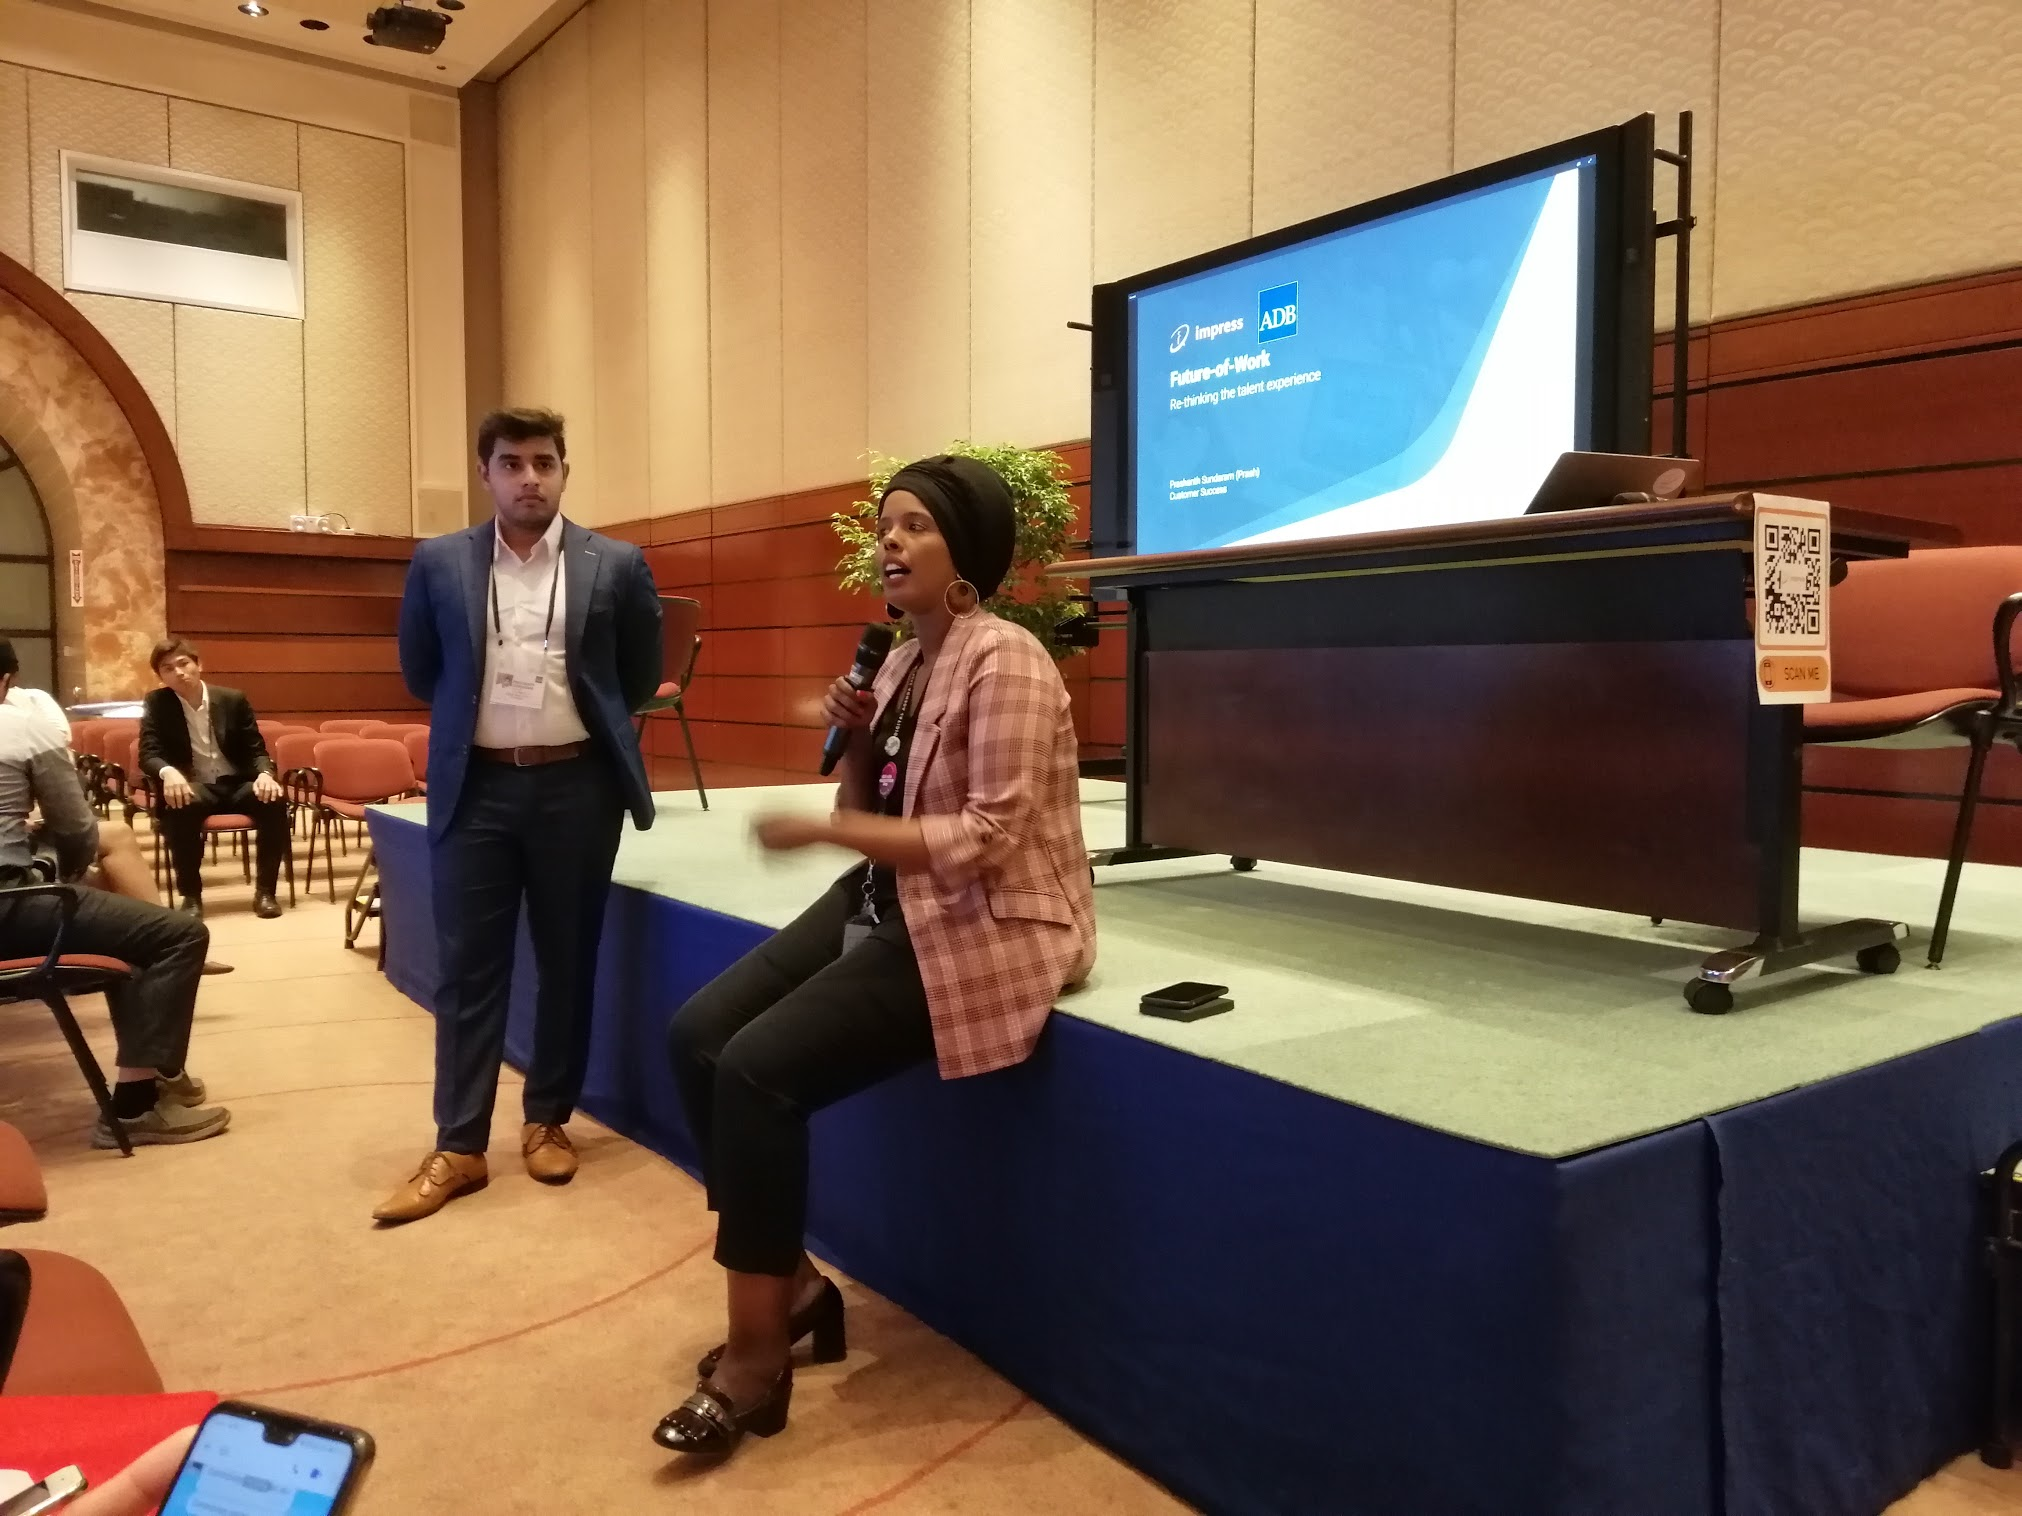 1:41 p.m. - Happening now: the mini discussions resume! Senior IT Specialist Kadra Saeed gives a short introduction on Impress.ai.